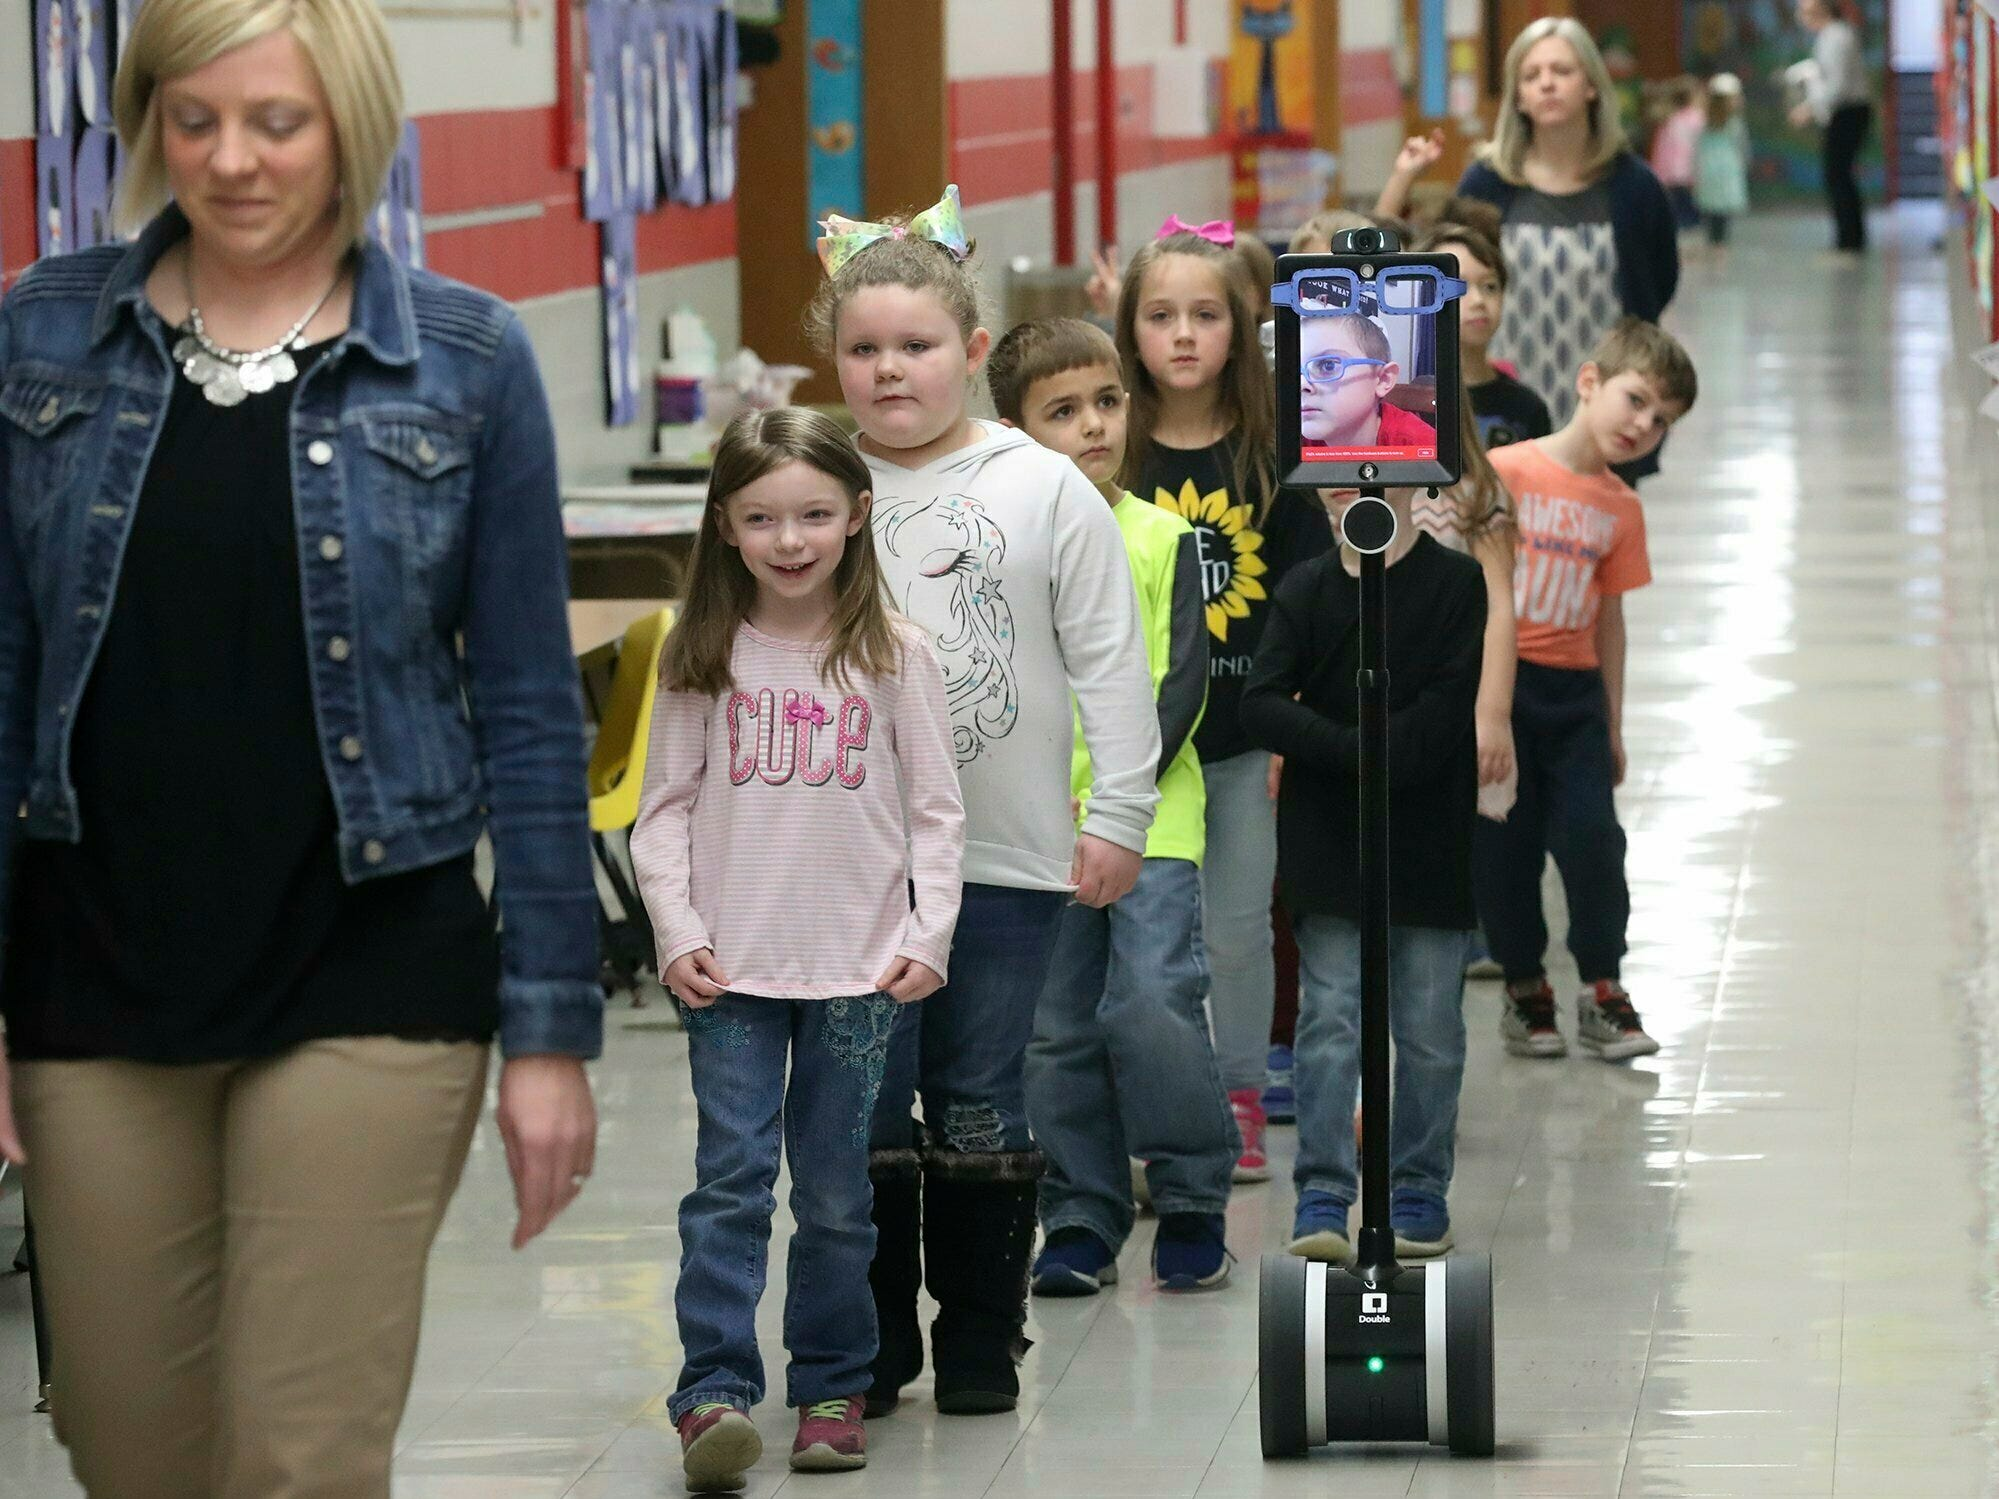 In this Thursday, Feb. 28, 2019 photo, Levi Suttles, 6, displayed on a monitor, follows his classmates down a hallway at Miami View School in South Charleston, Ohio. The robot, designed by the Ohio State University engineering department, allows the young leukemia patient to move around and interact with his class from a computer at home.